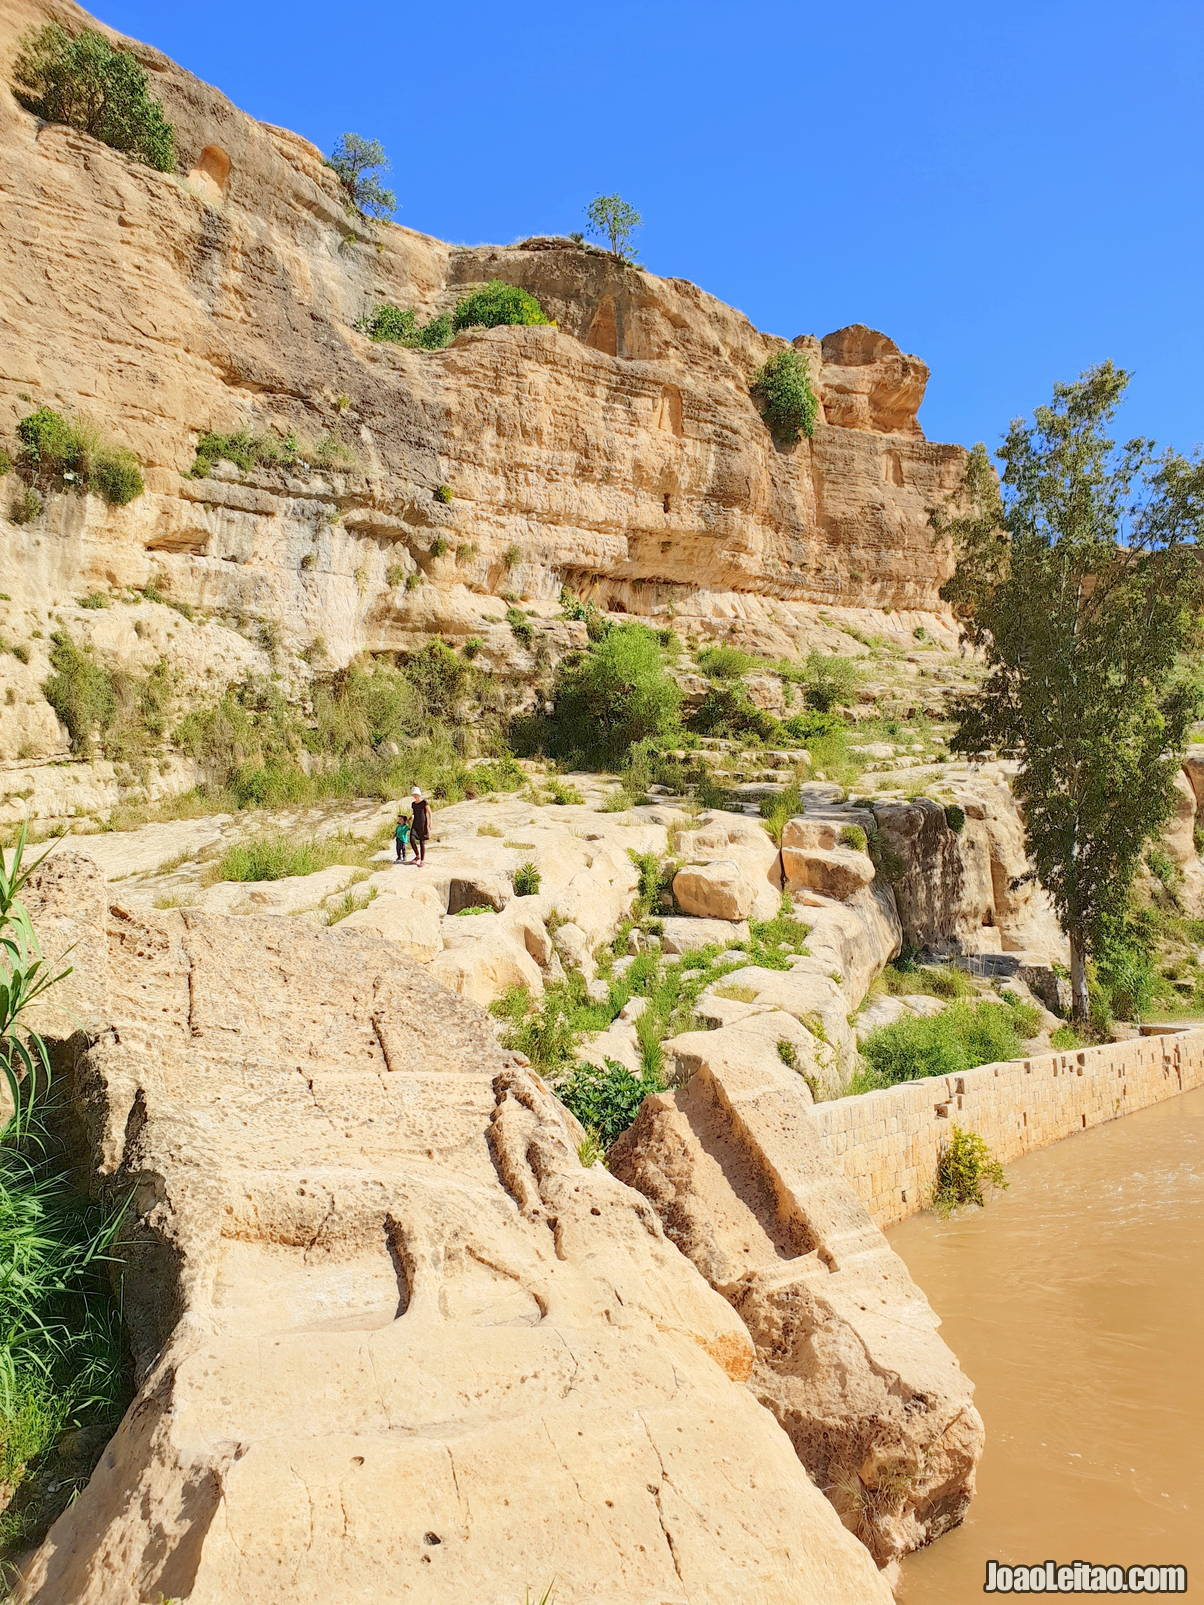 Visit rock reliefs at Khaniss in Iraqi Kurdistan